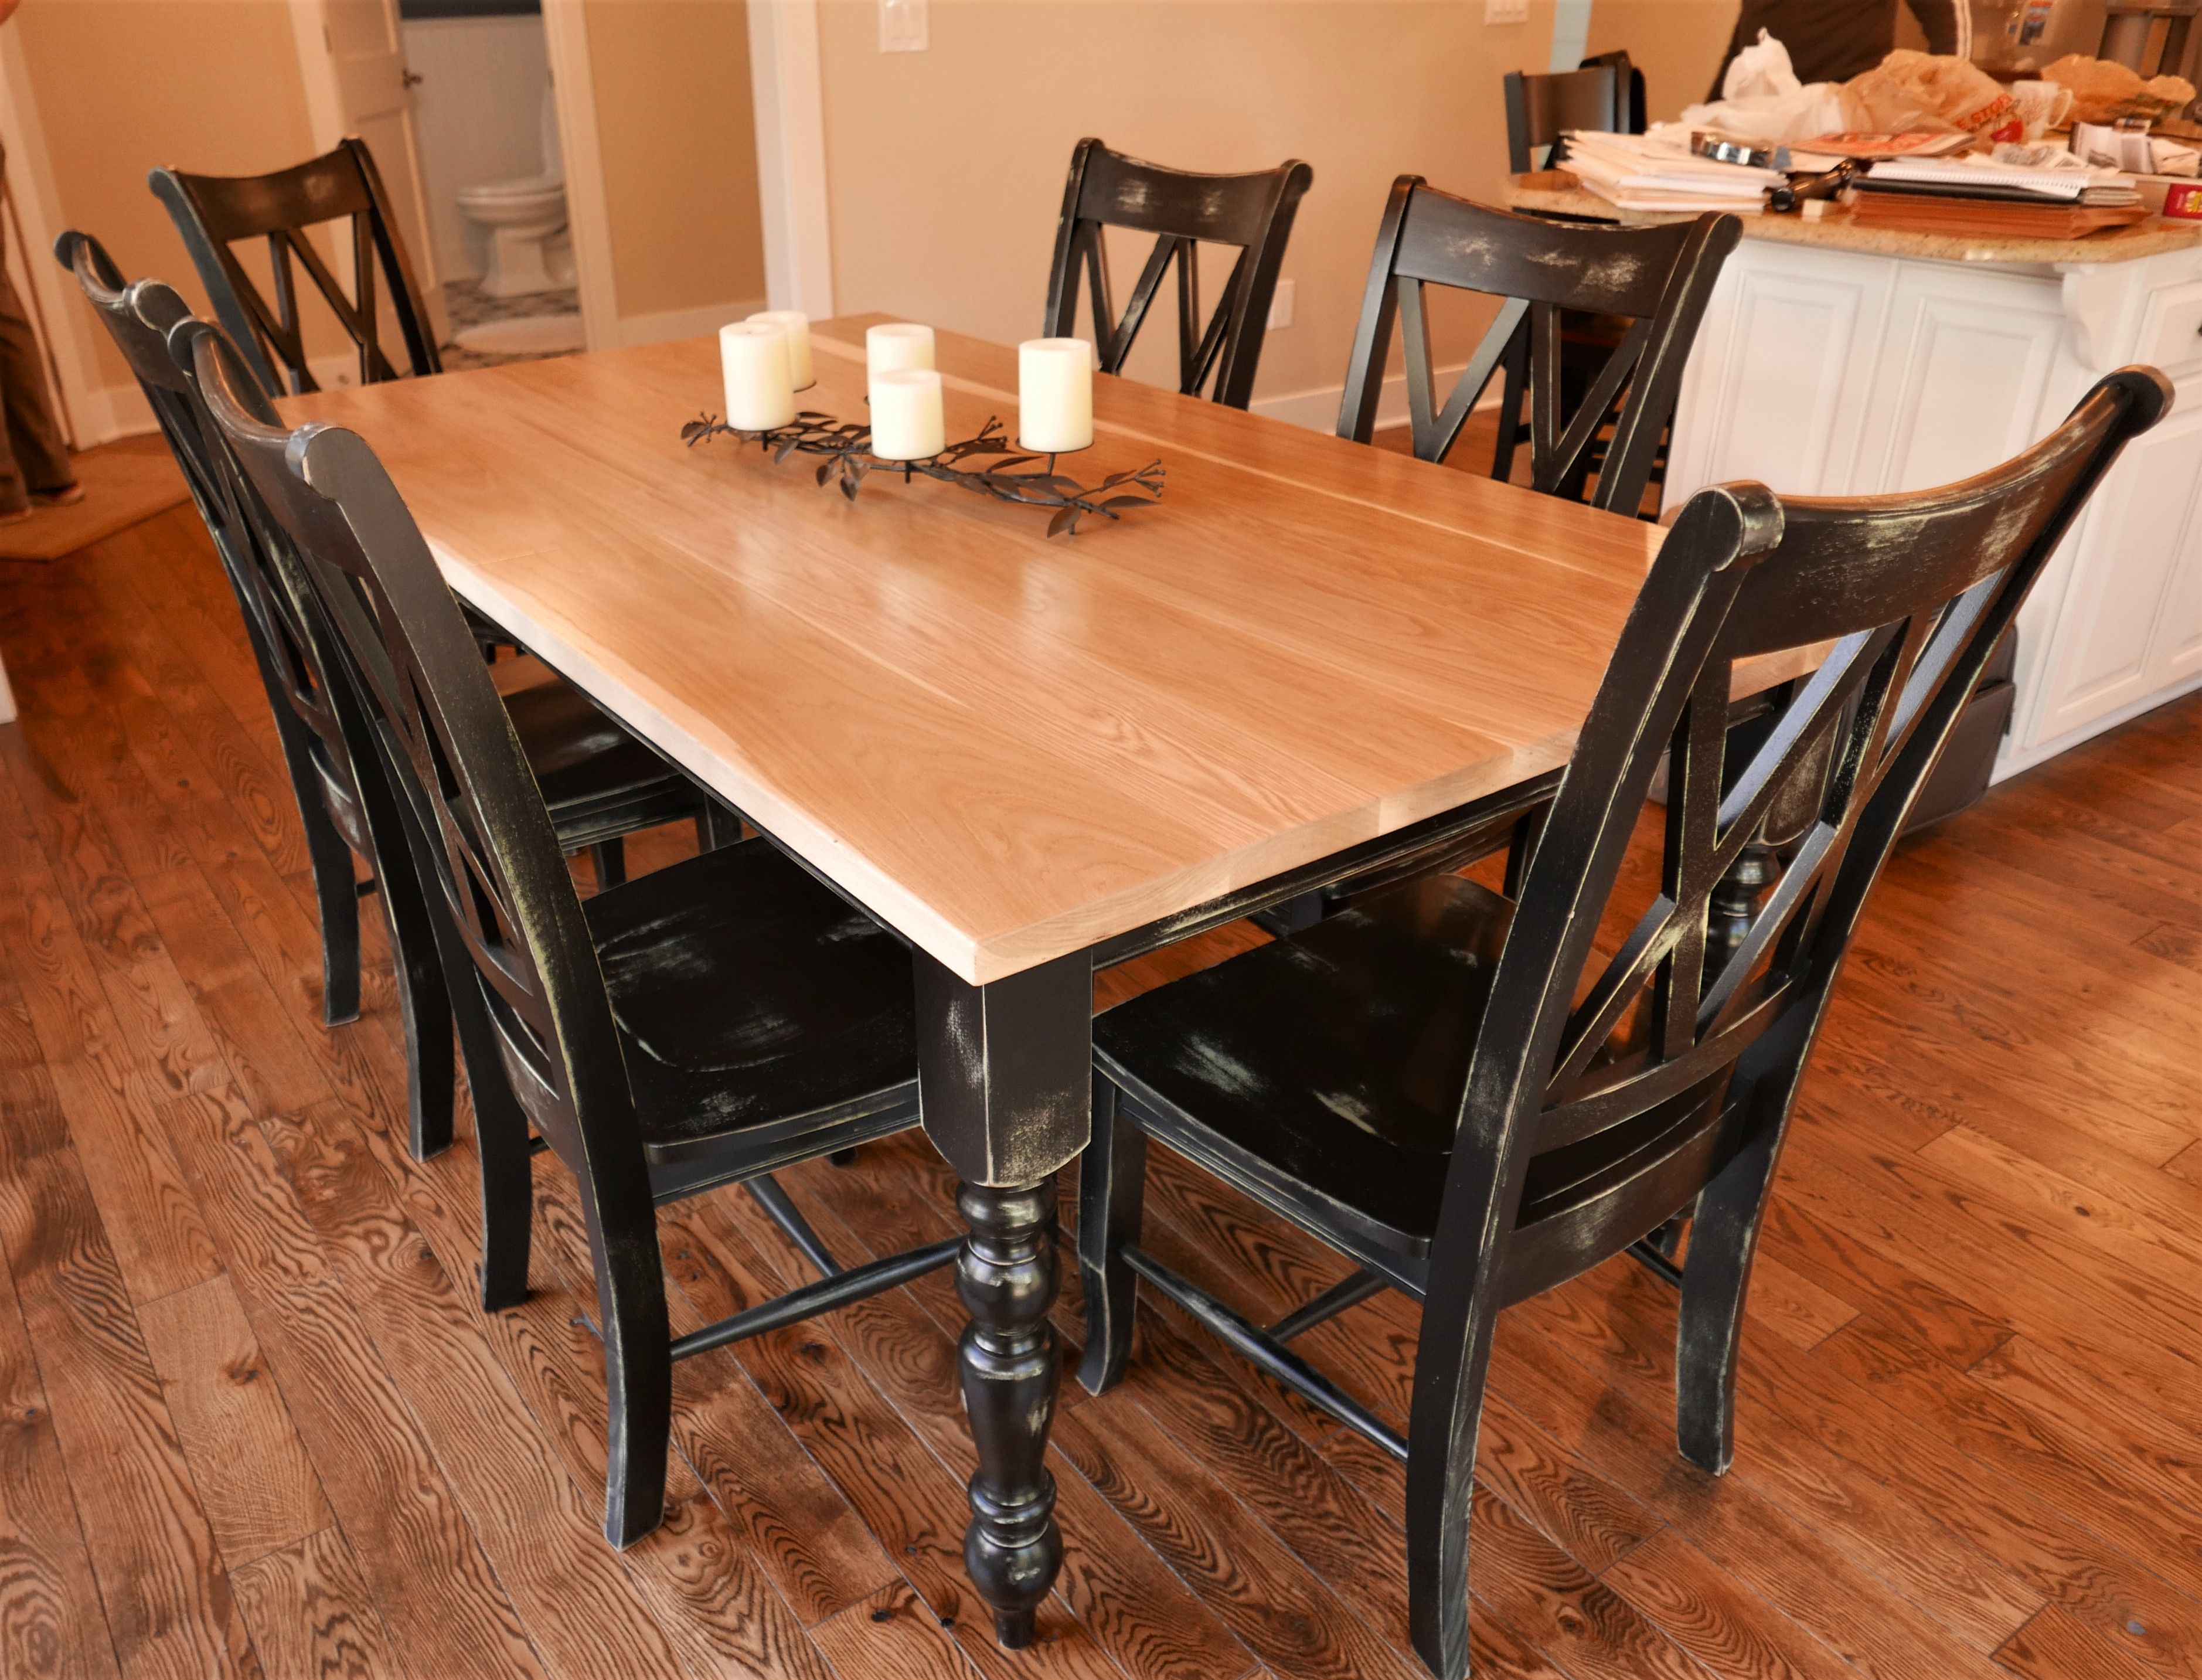 Farmhouse Charm Our Old English Dining Table Brings Warmth And